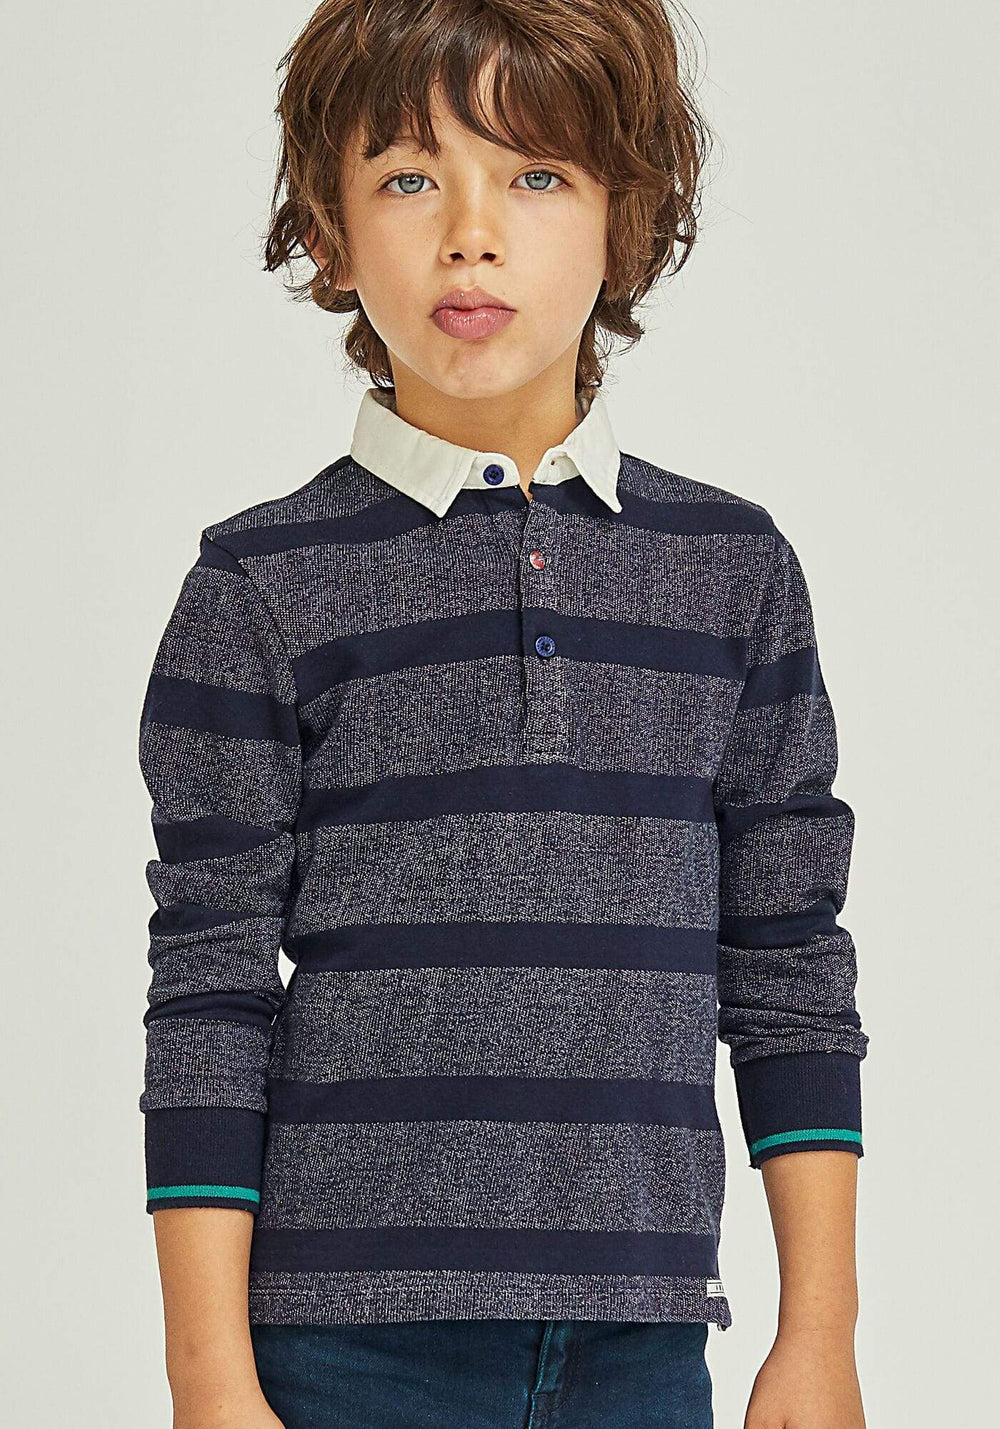 IKKS IKKS Striped Polo  JellyBeanz Kids